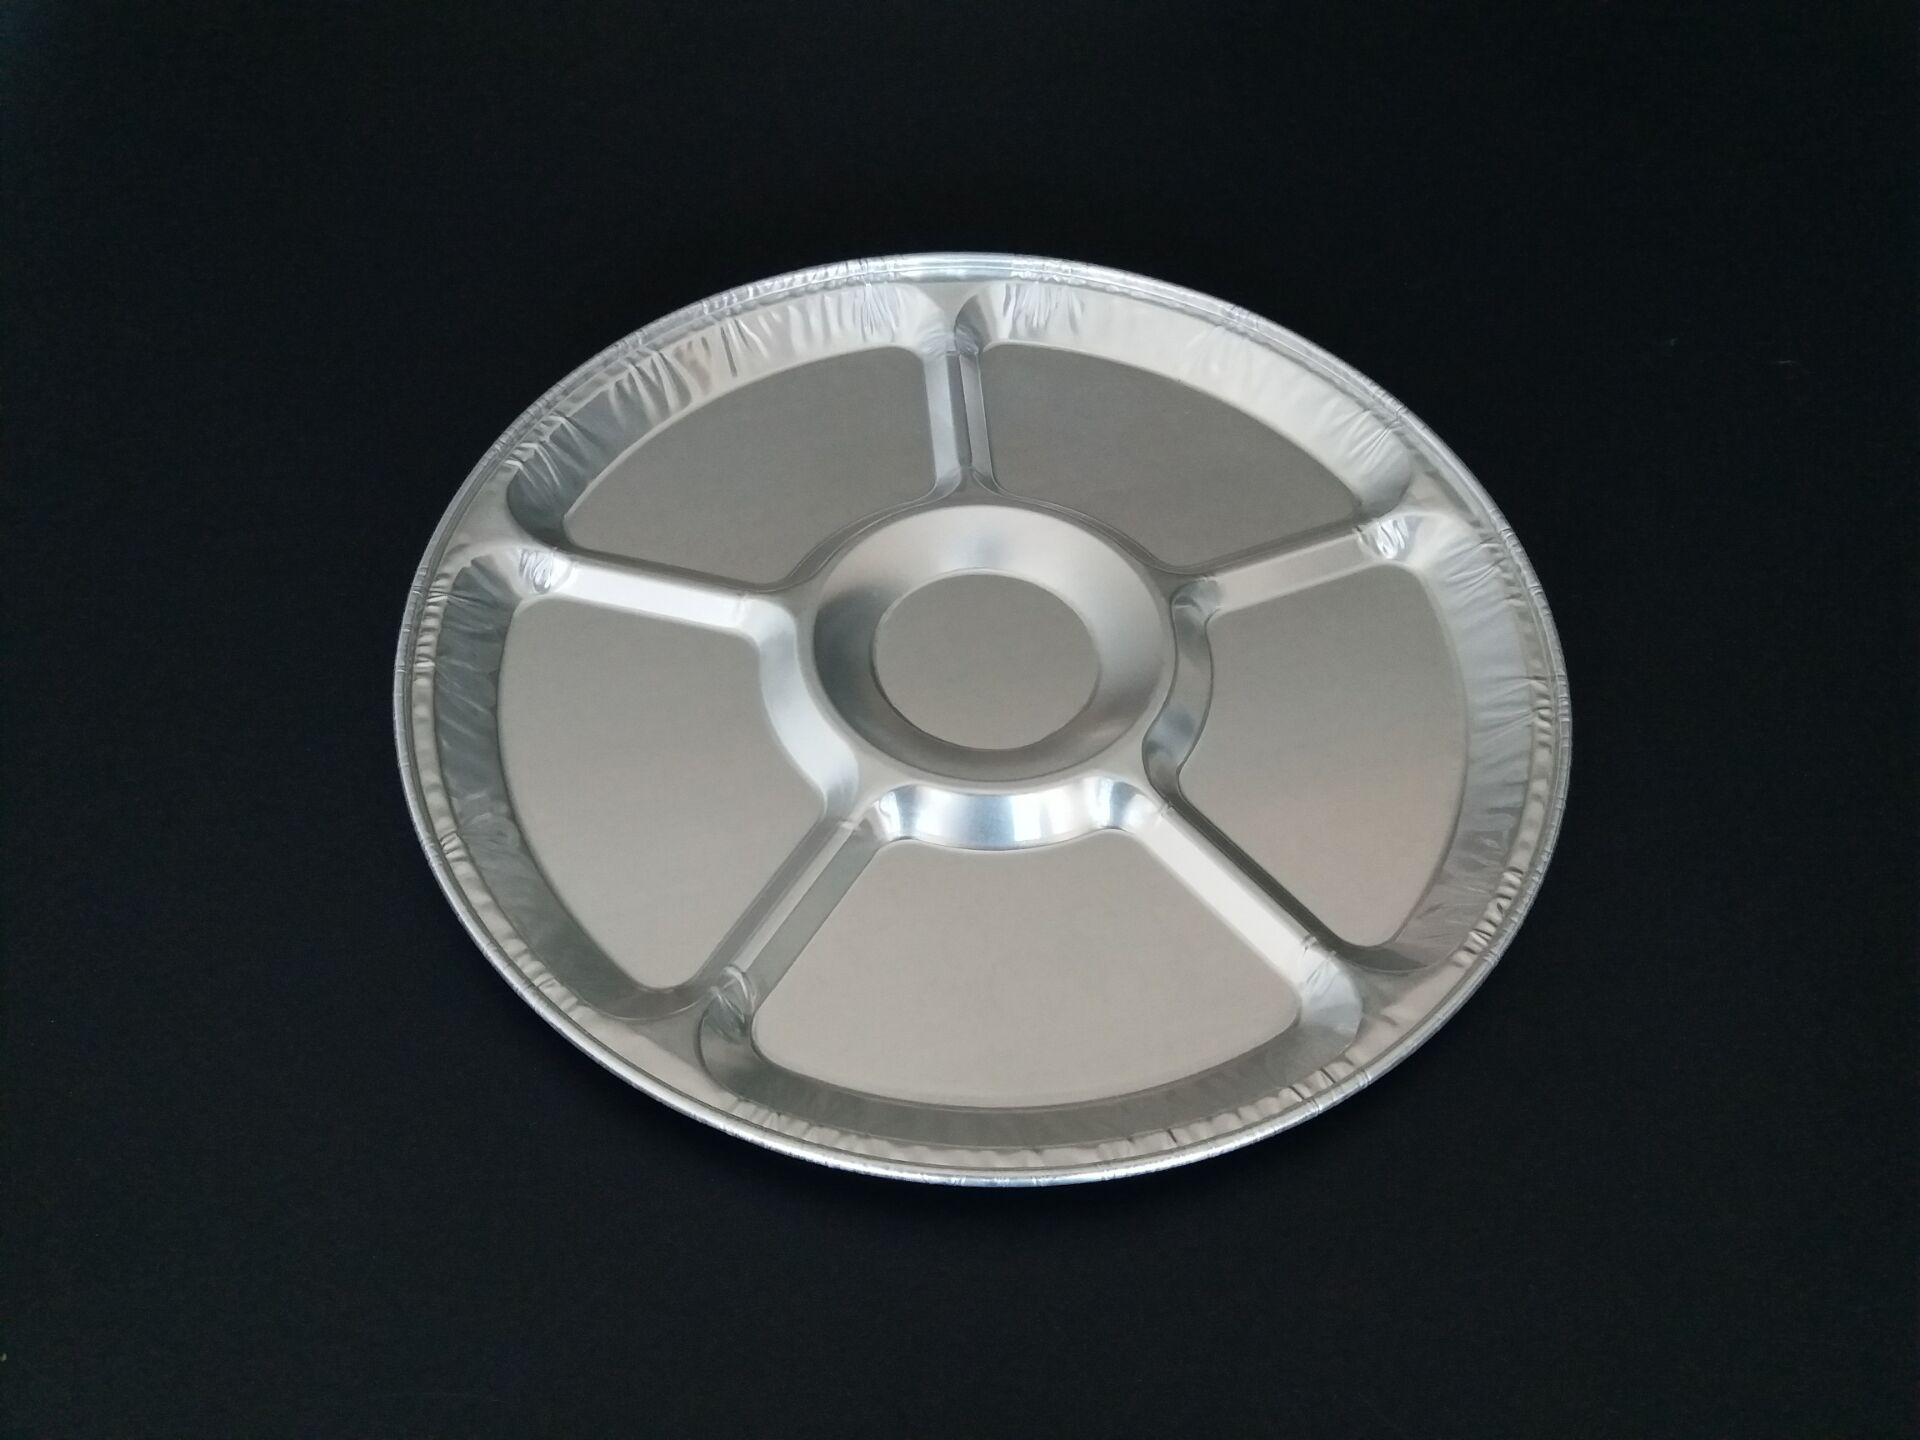 12inch round aluminum serving tray